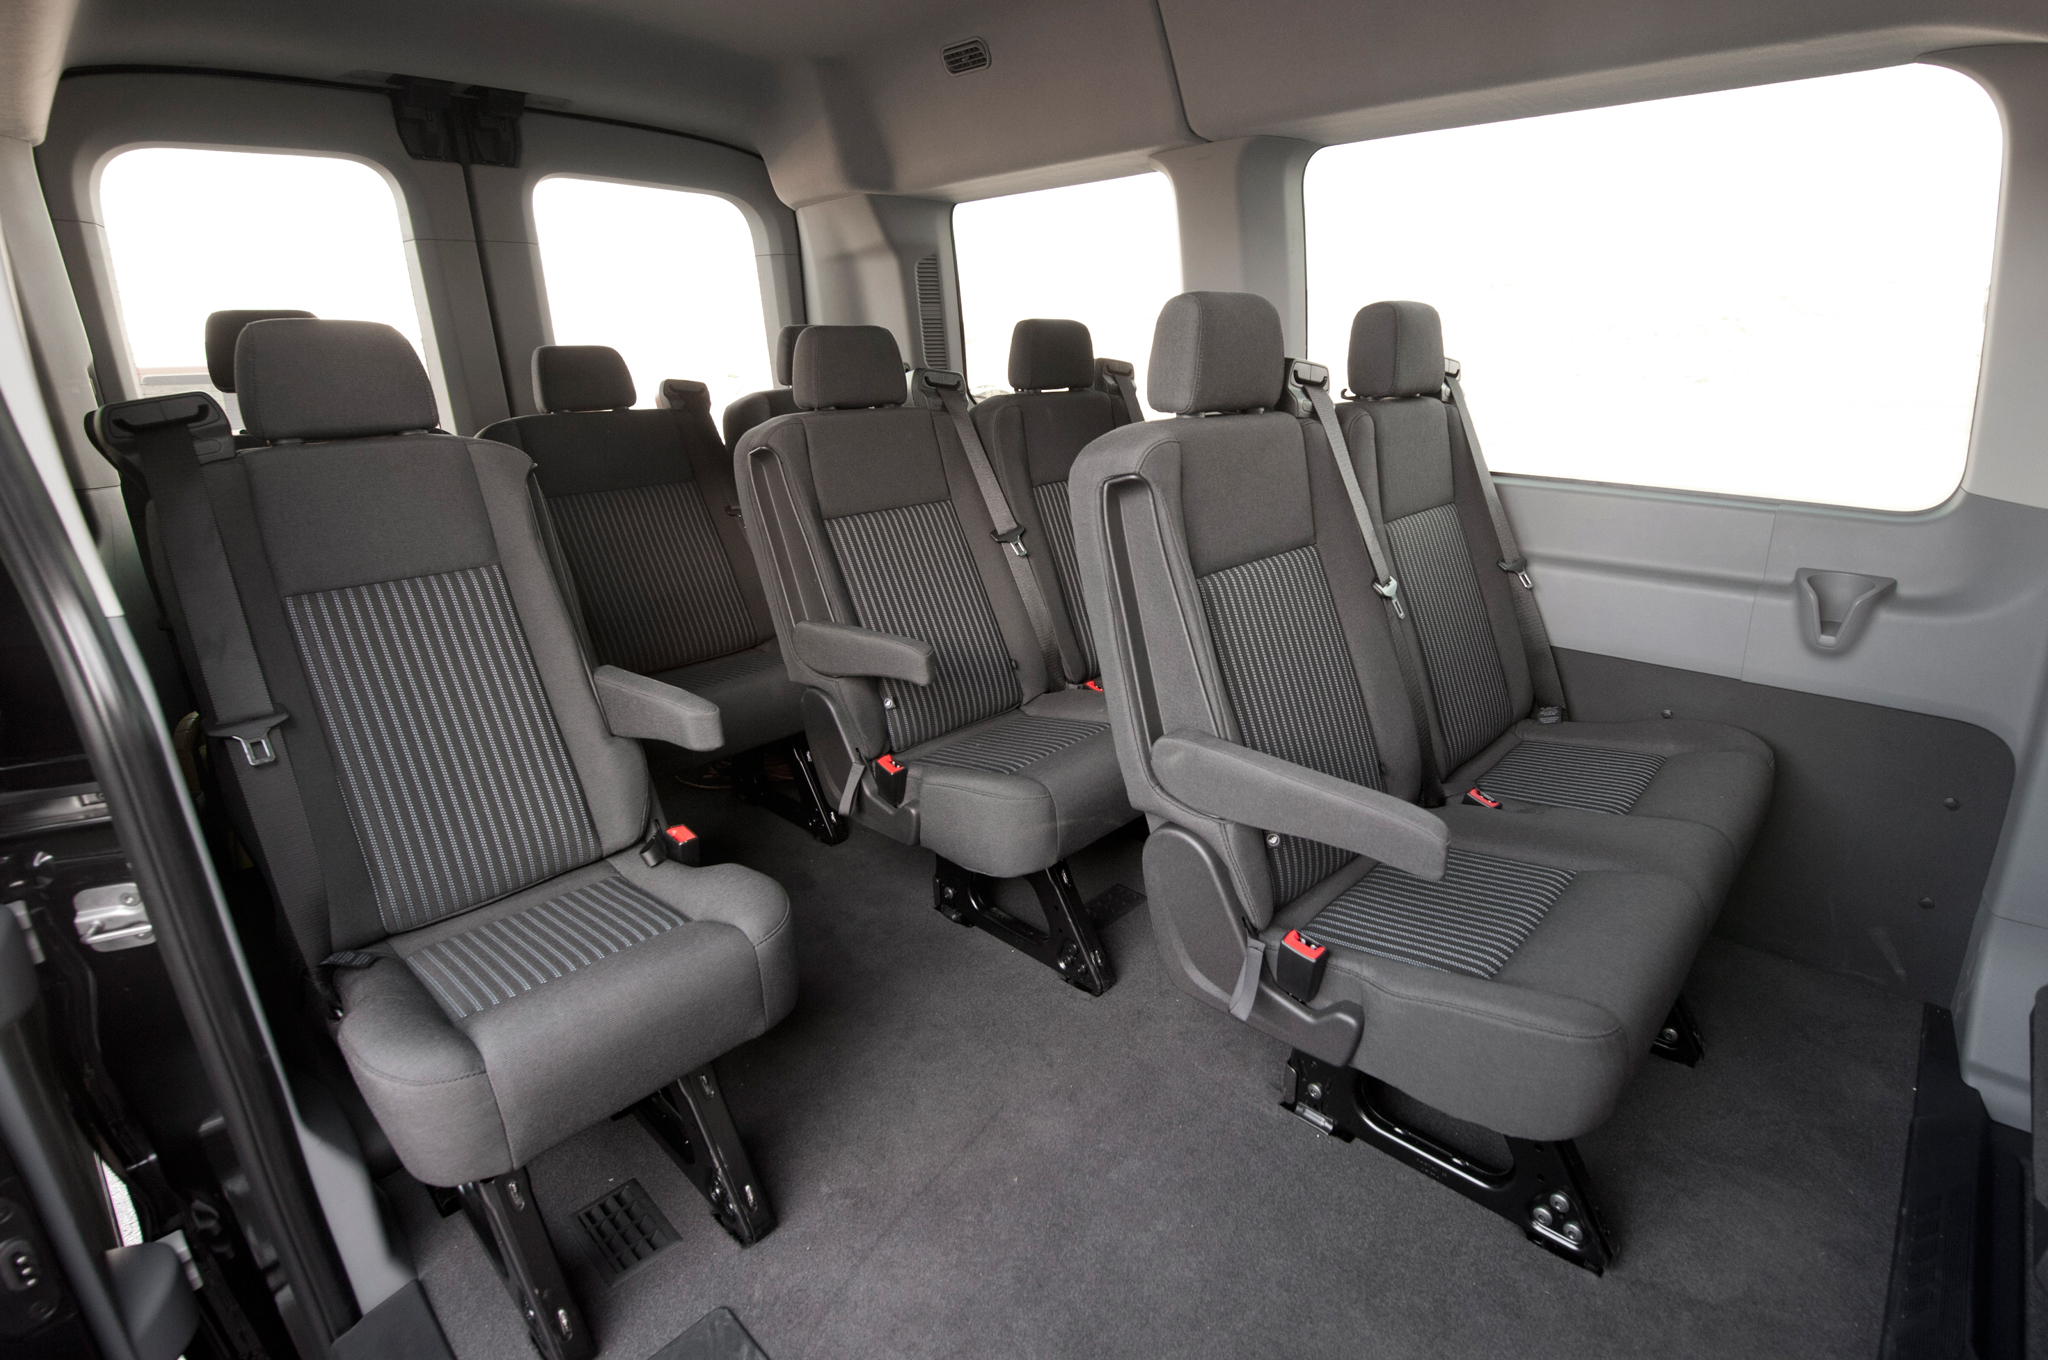 2015 Ford Transit 150 Seats Interior (Photo 6 of 13)